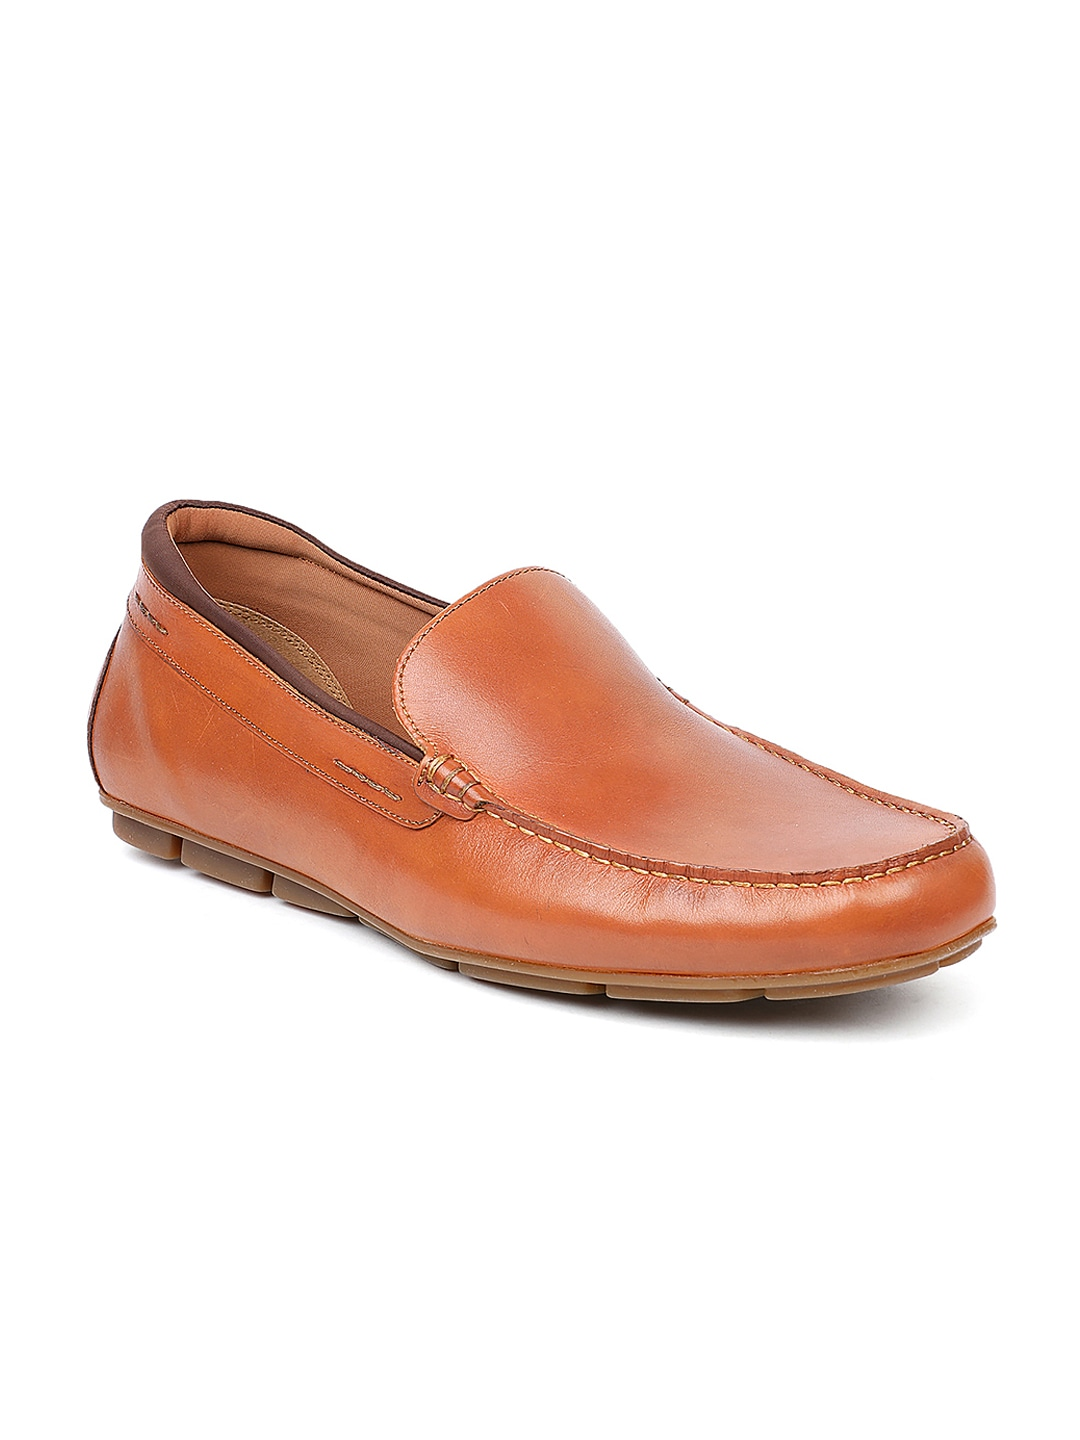 953b0e1c055 ALDO Shoes - Buy Shoes from ALDO Online Store in India